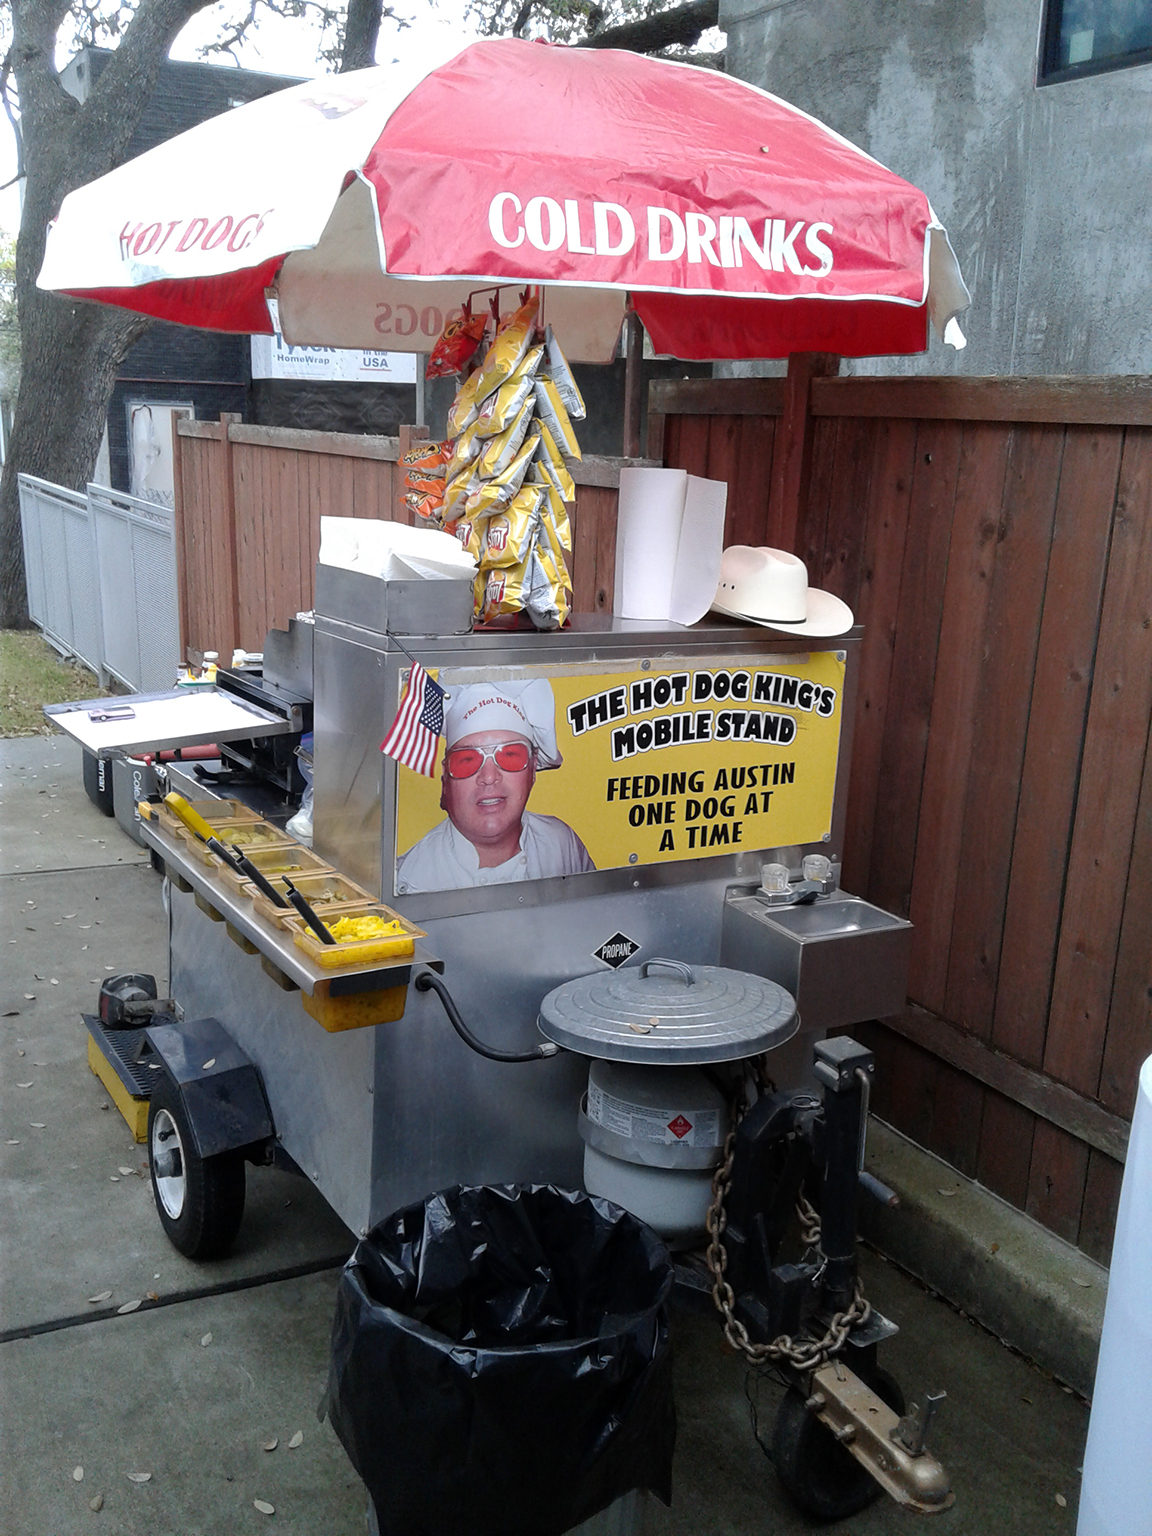 Clean Cart Ready for Serving You